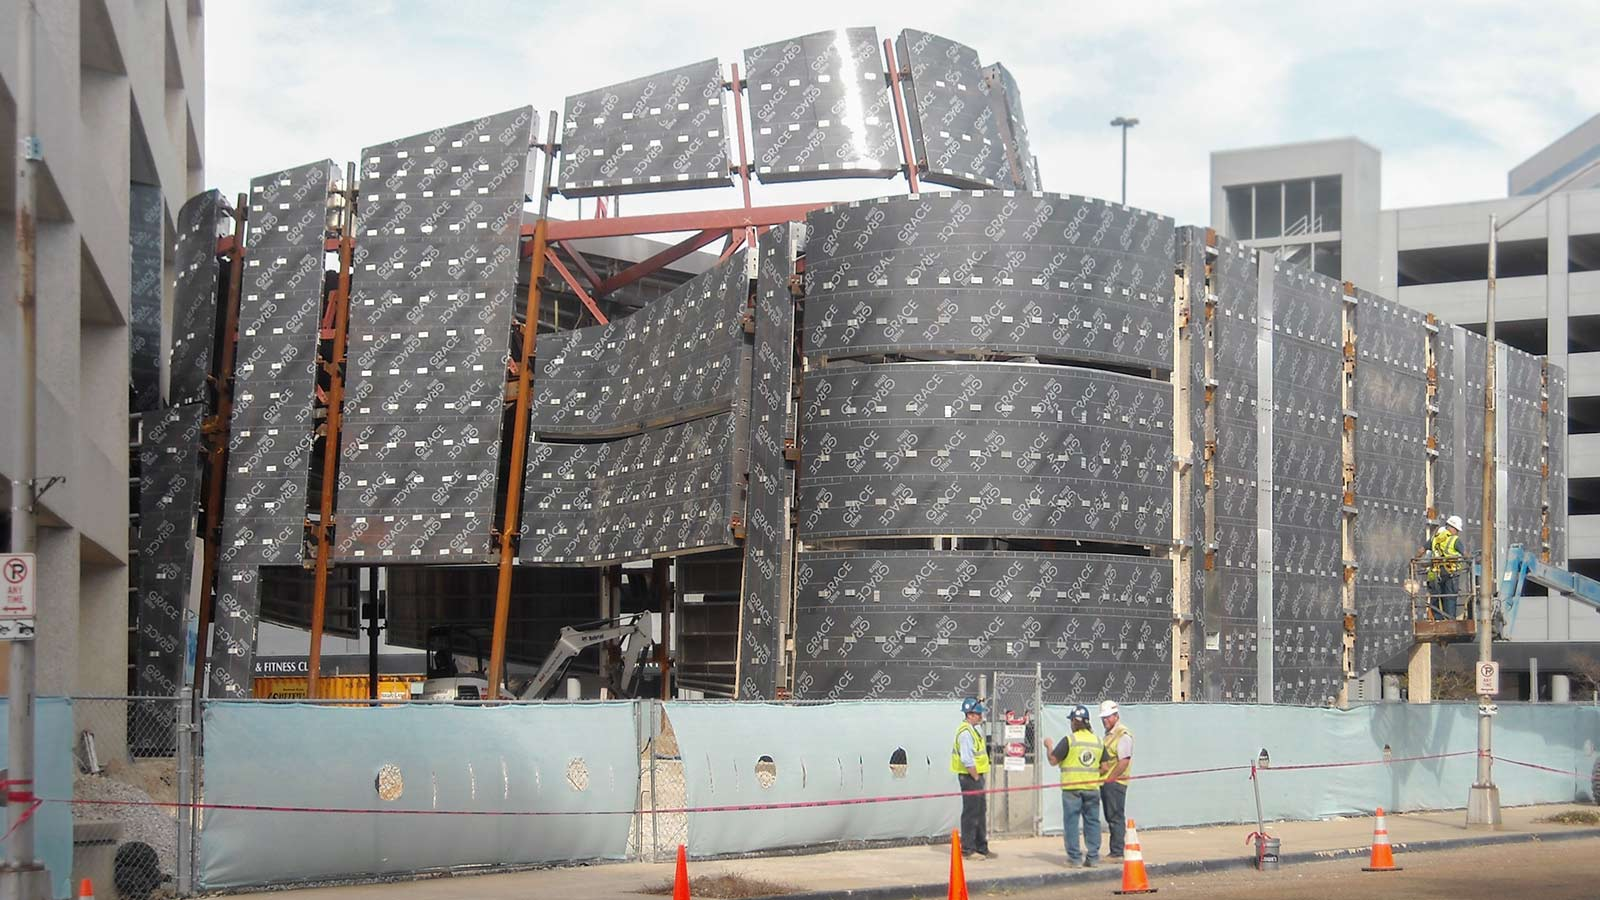 ZEPPS understructure visible as Zahner field operators prepare to install the lites of glass.